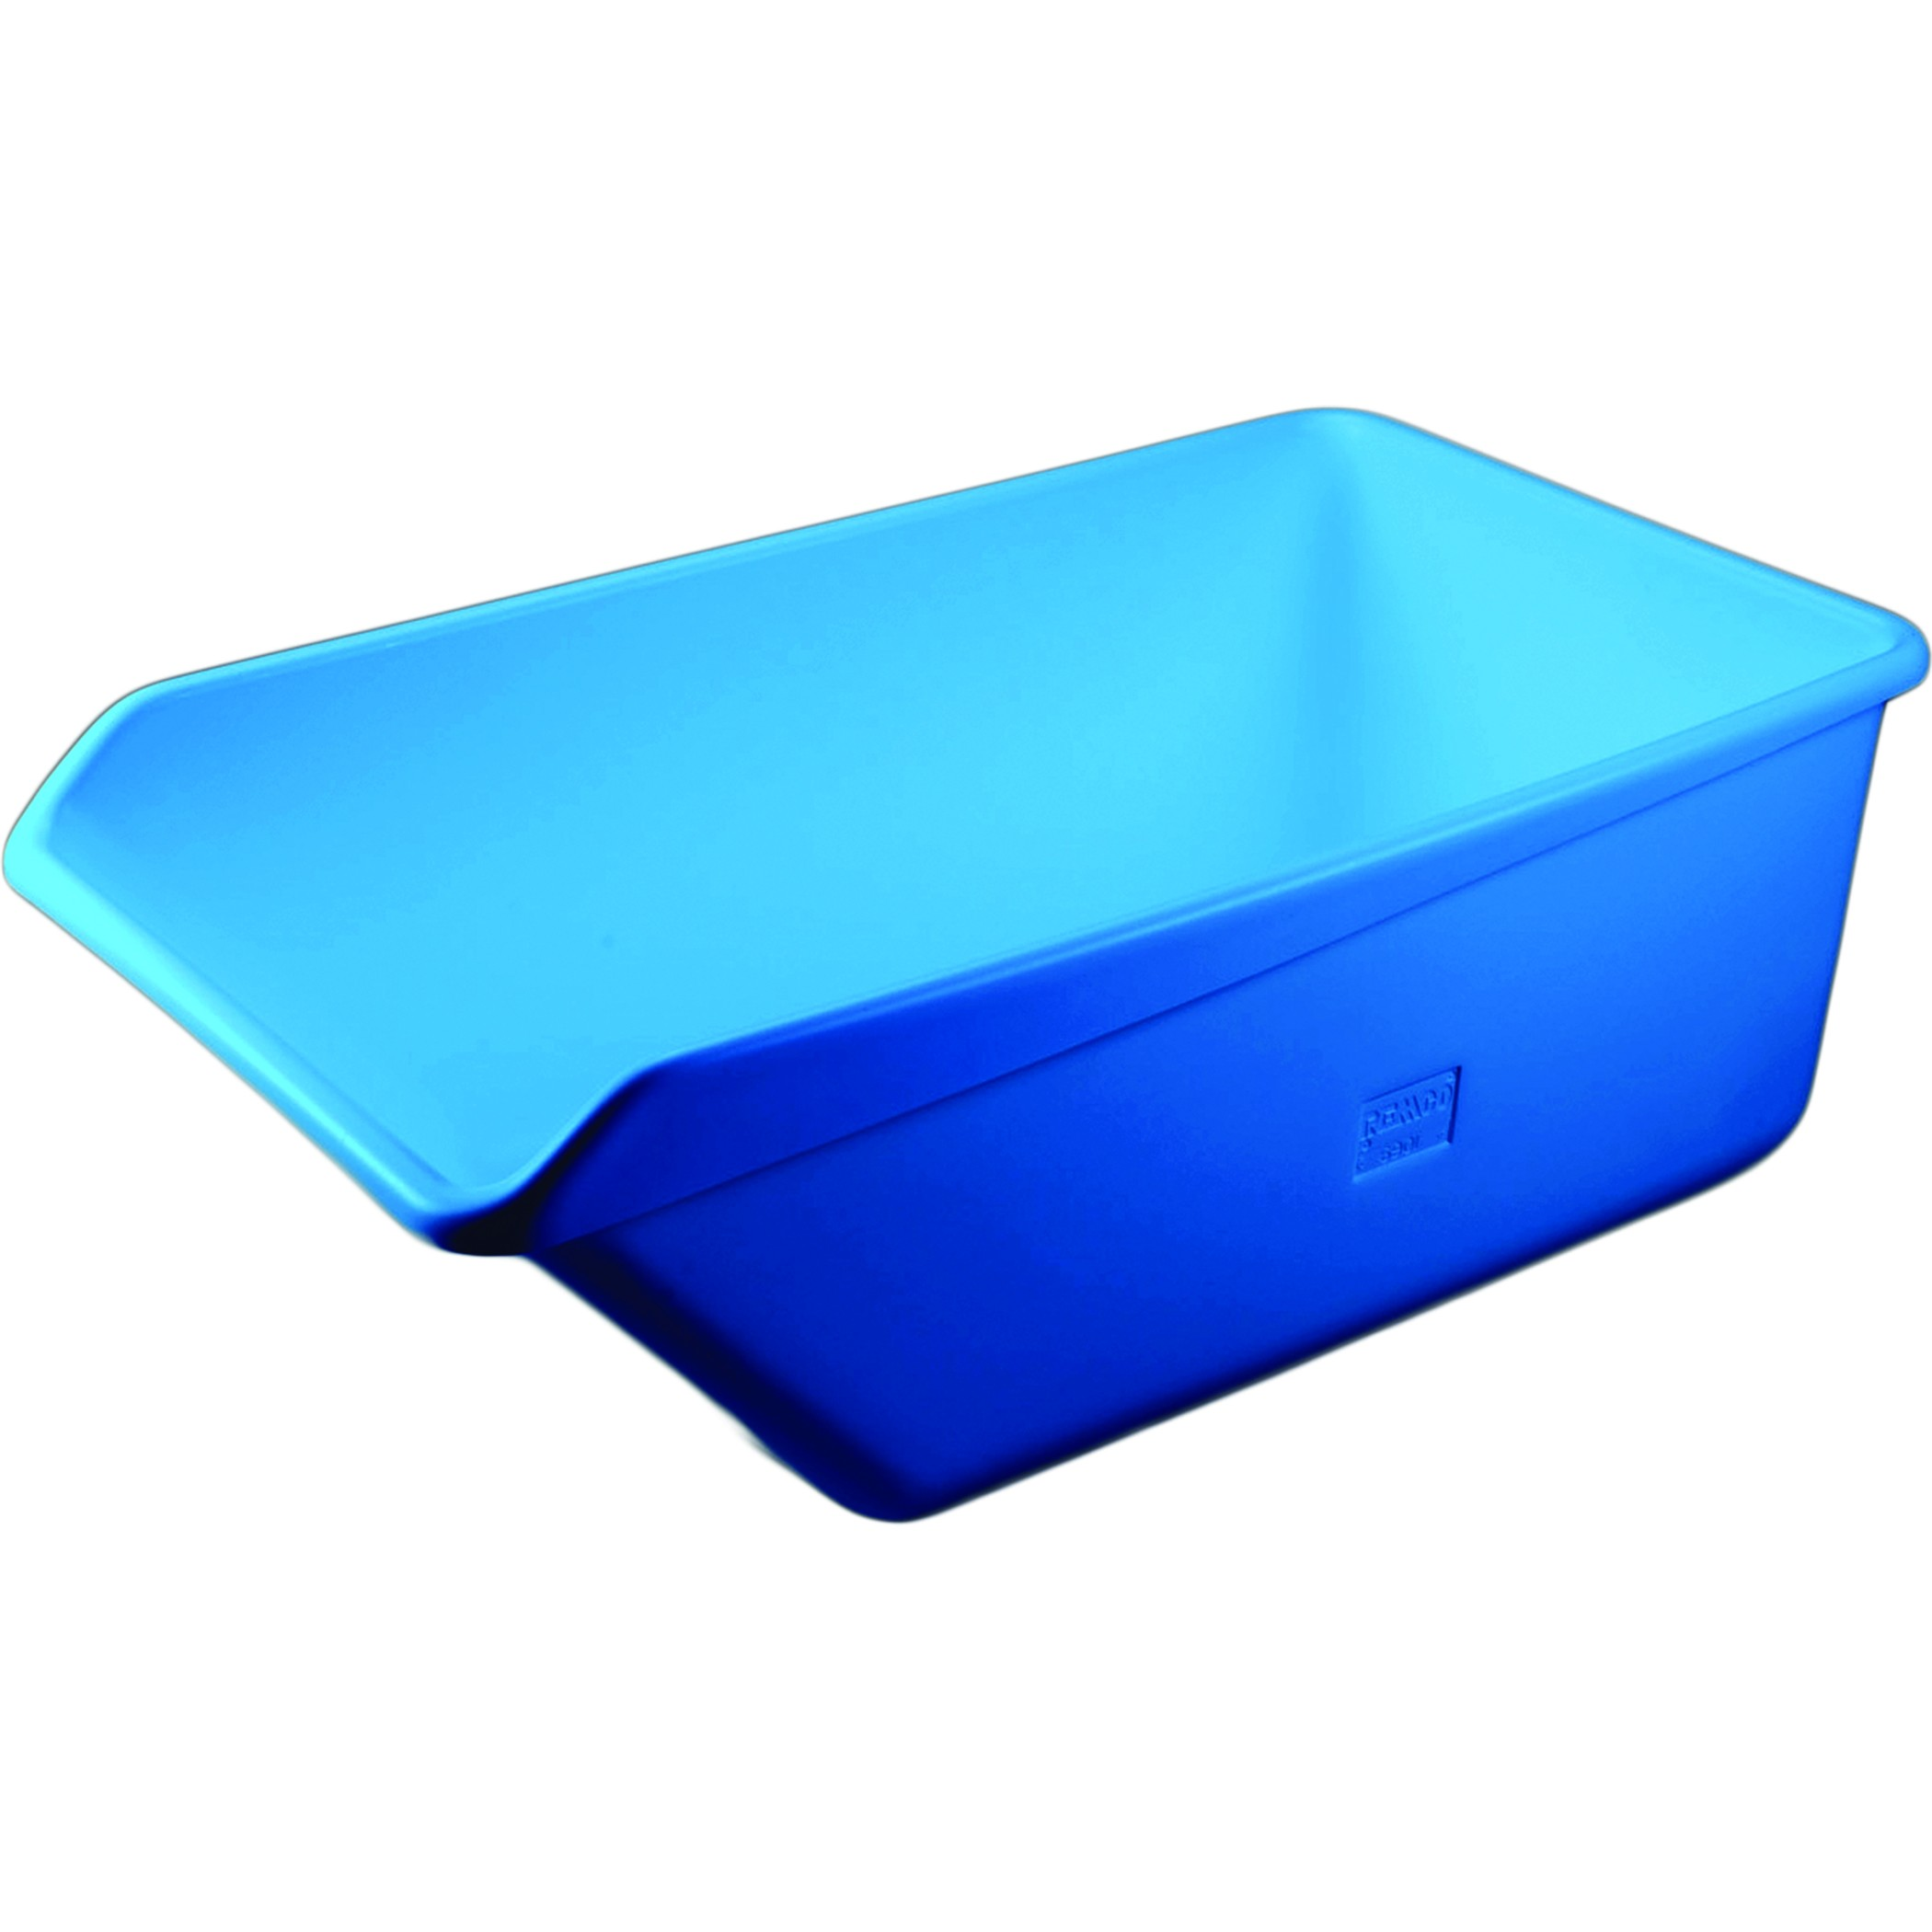 Premium Angled Dump Tubs With or Without Drains Available in White ...